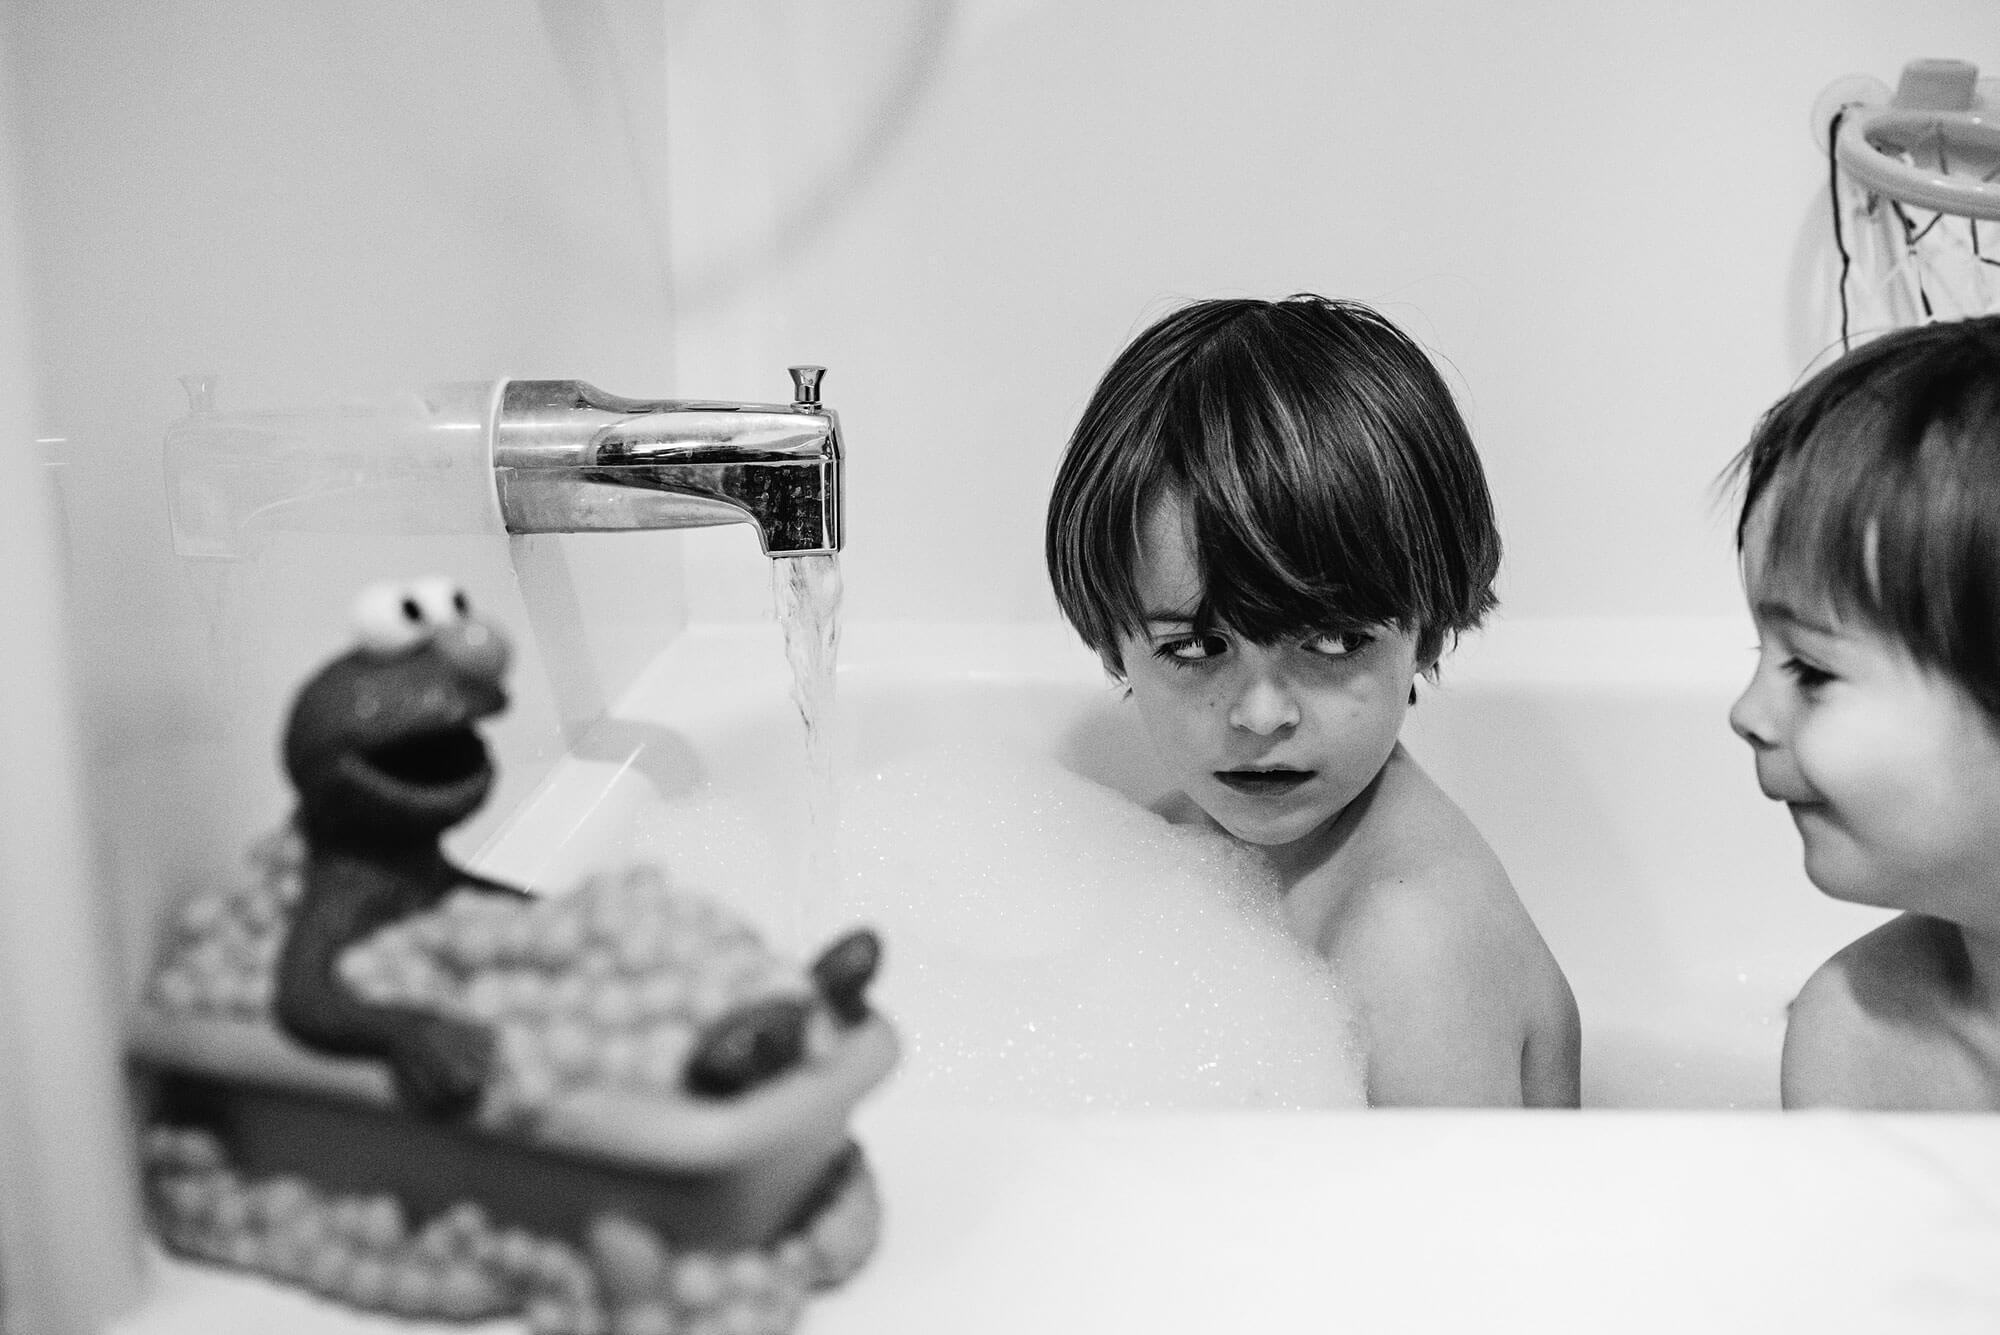 Brother in bathtub giving his sibling a dirty look